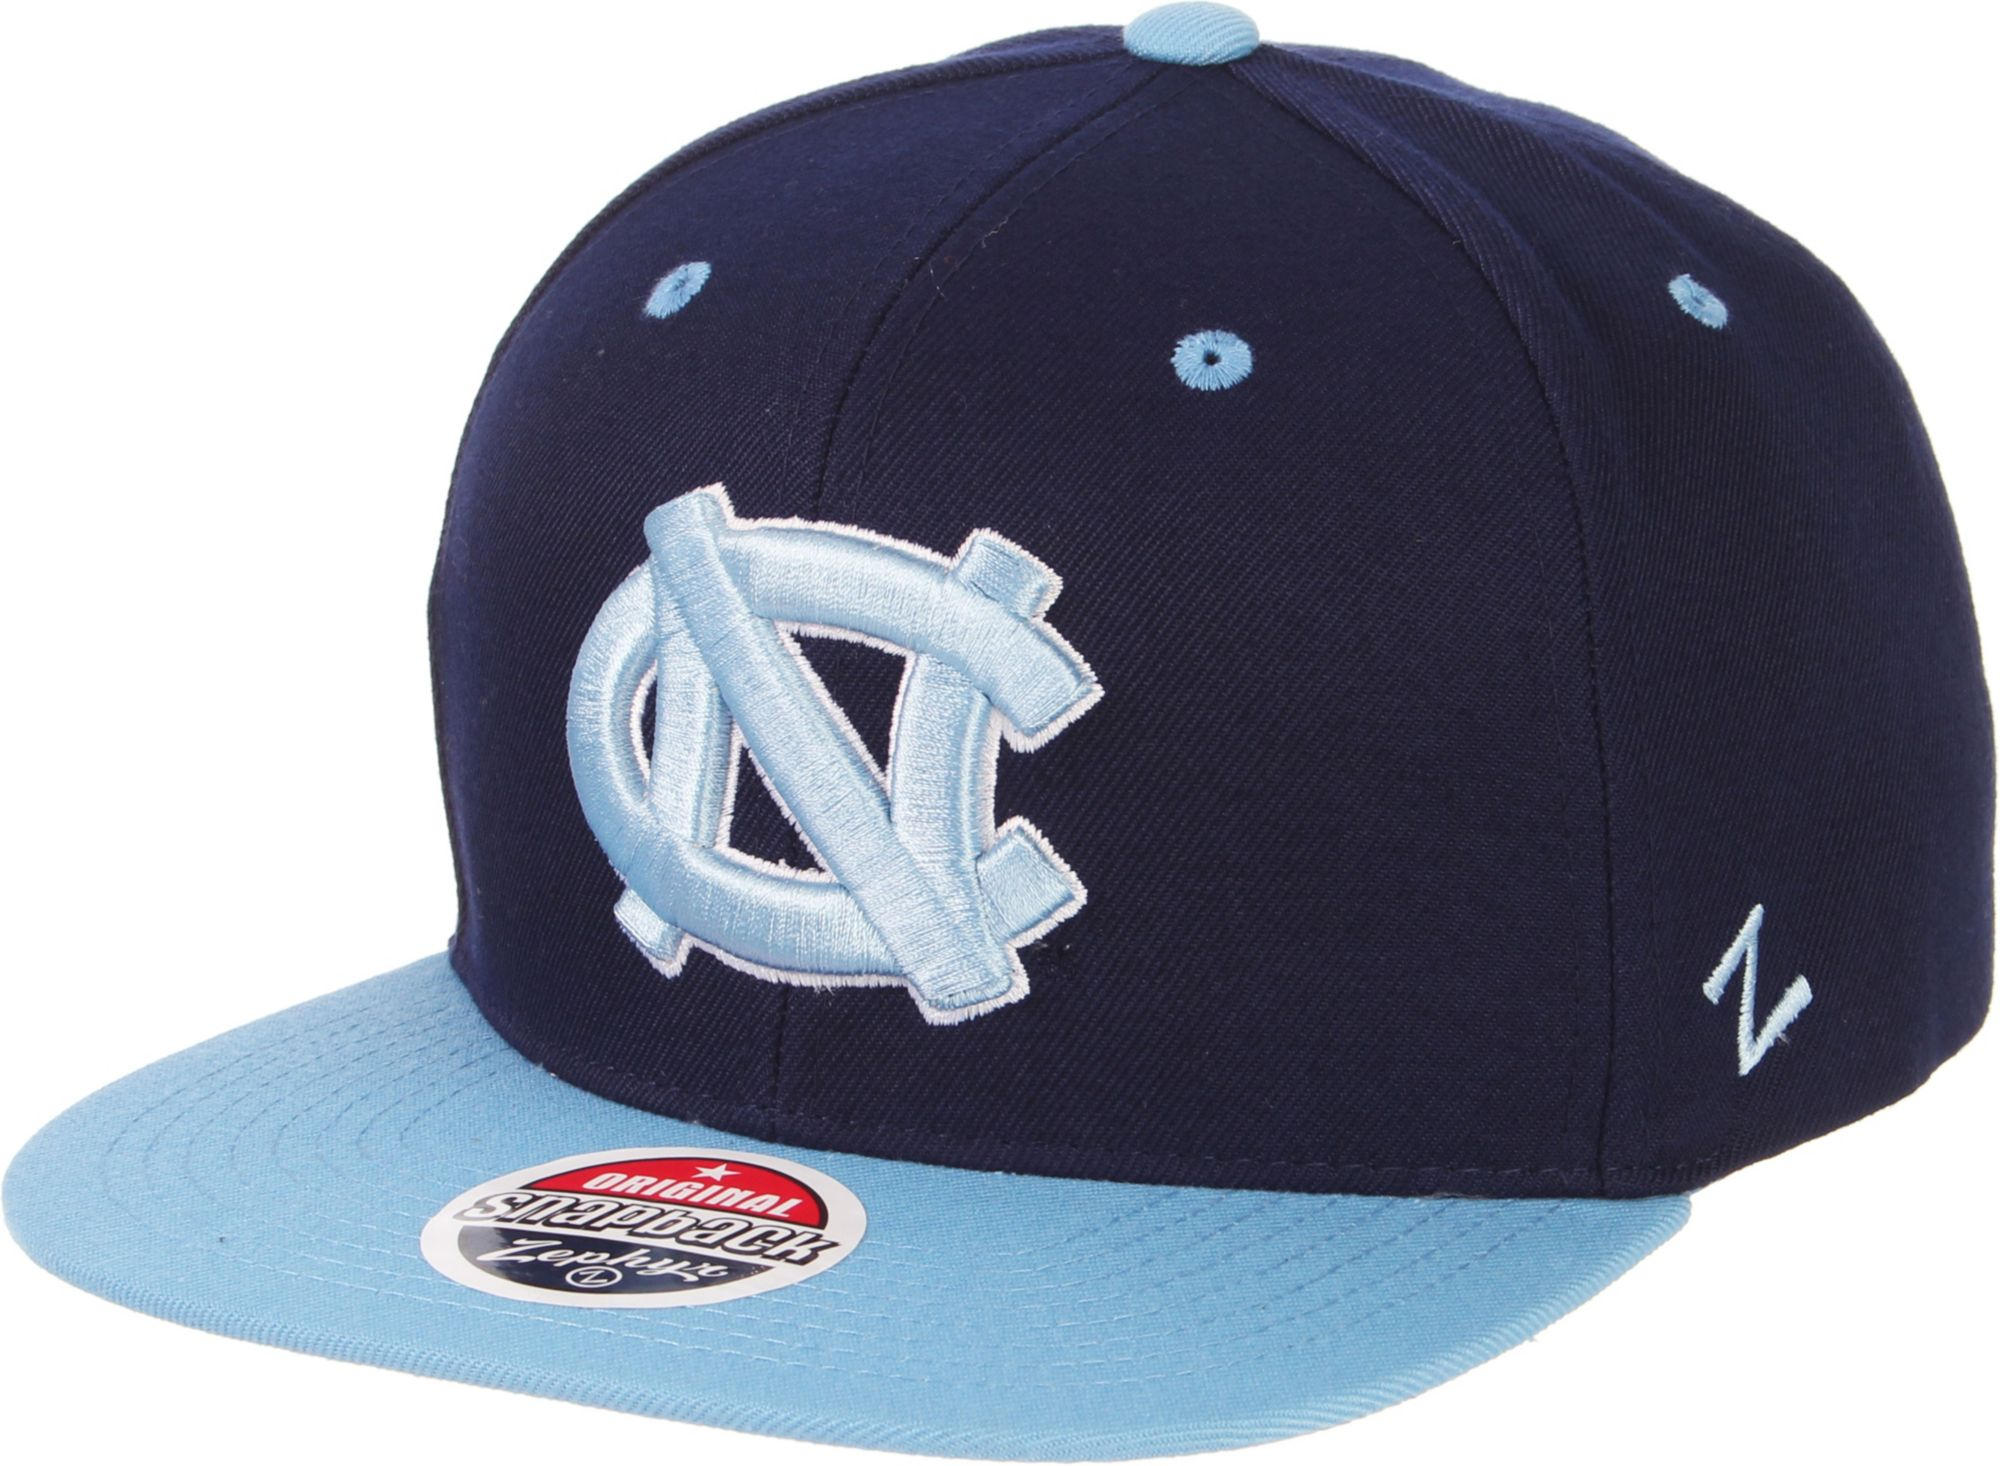 check out f8c6c 2c03a ... where to buy zephyr mens north carolina tar heels navy carolina blue  script adjustable snapback hat